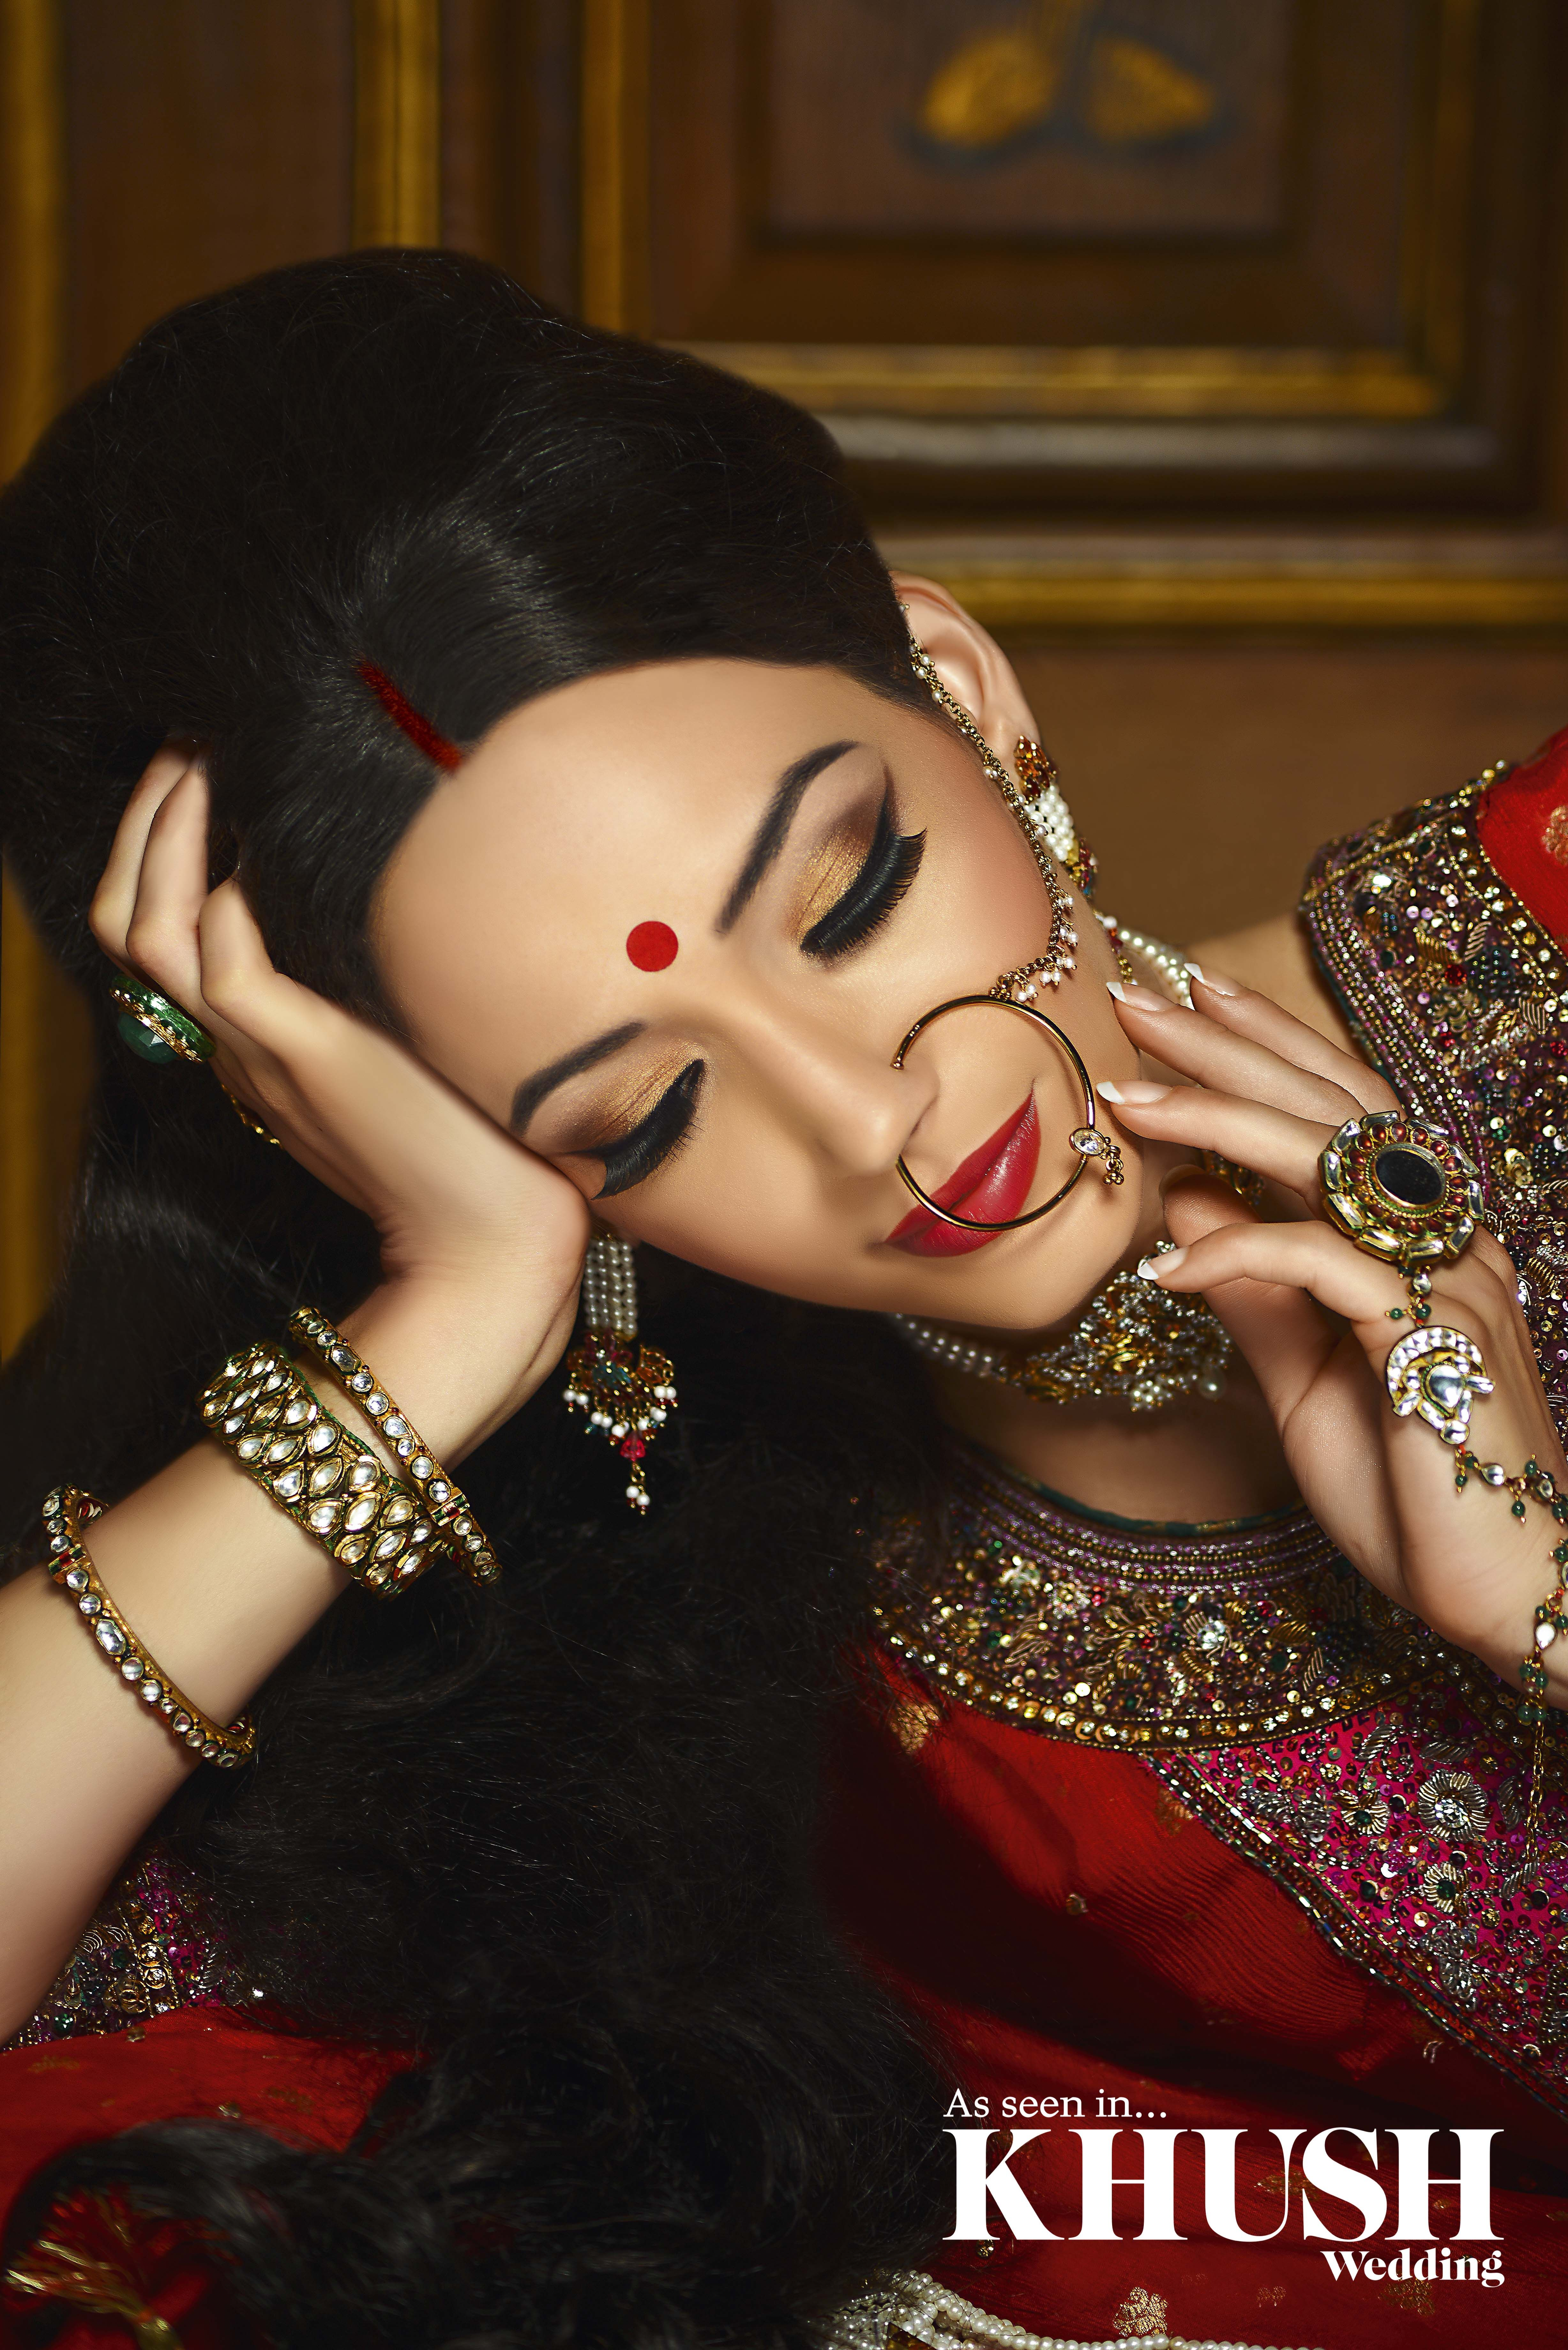 traditional bridal makeup by shahnaz islam t: +44(0)7538 181